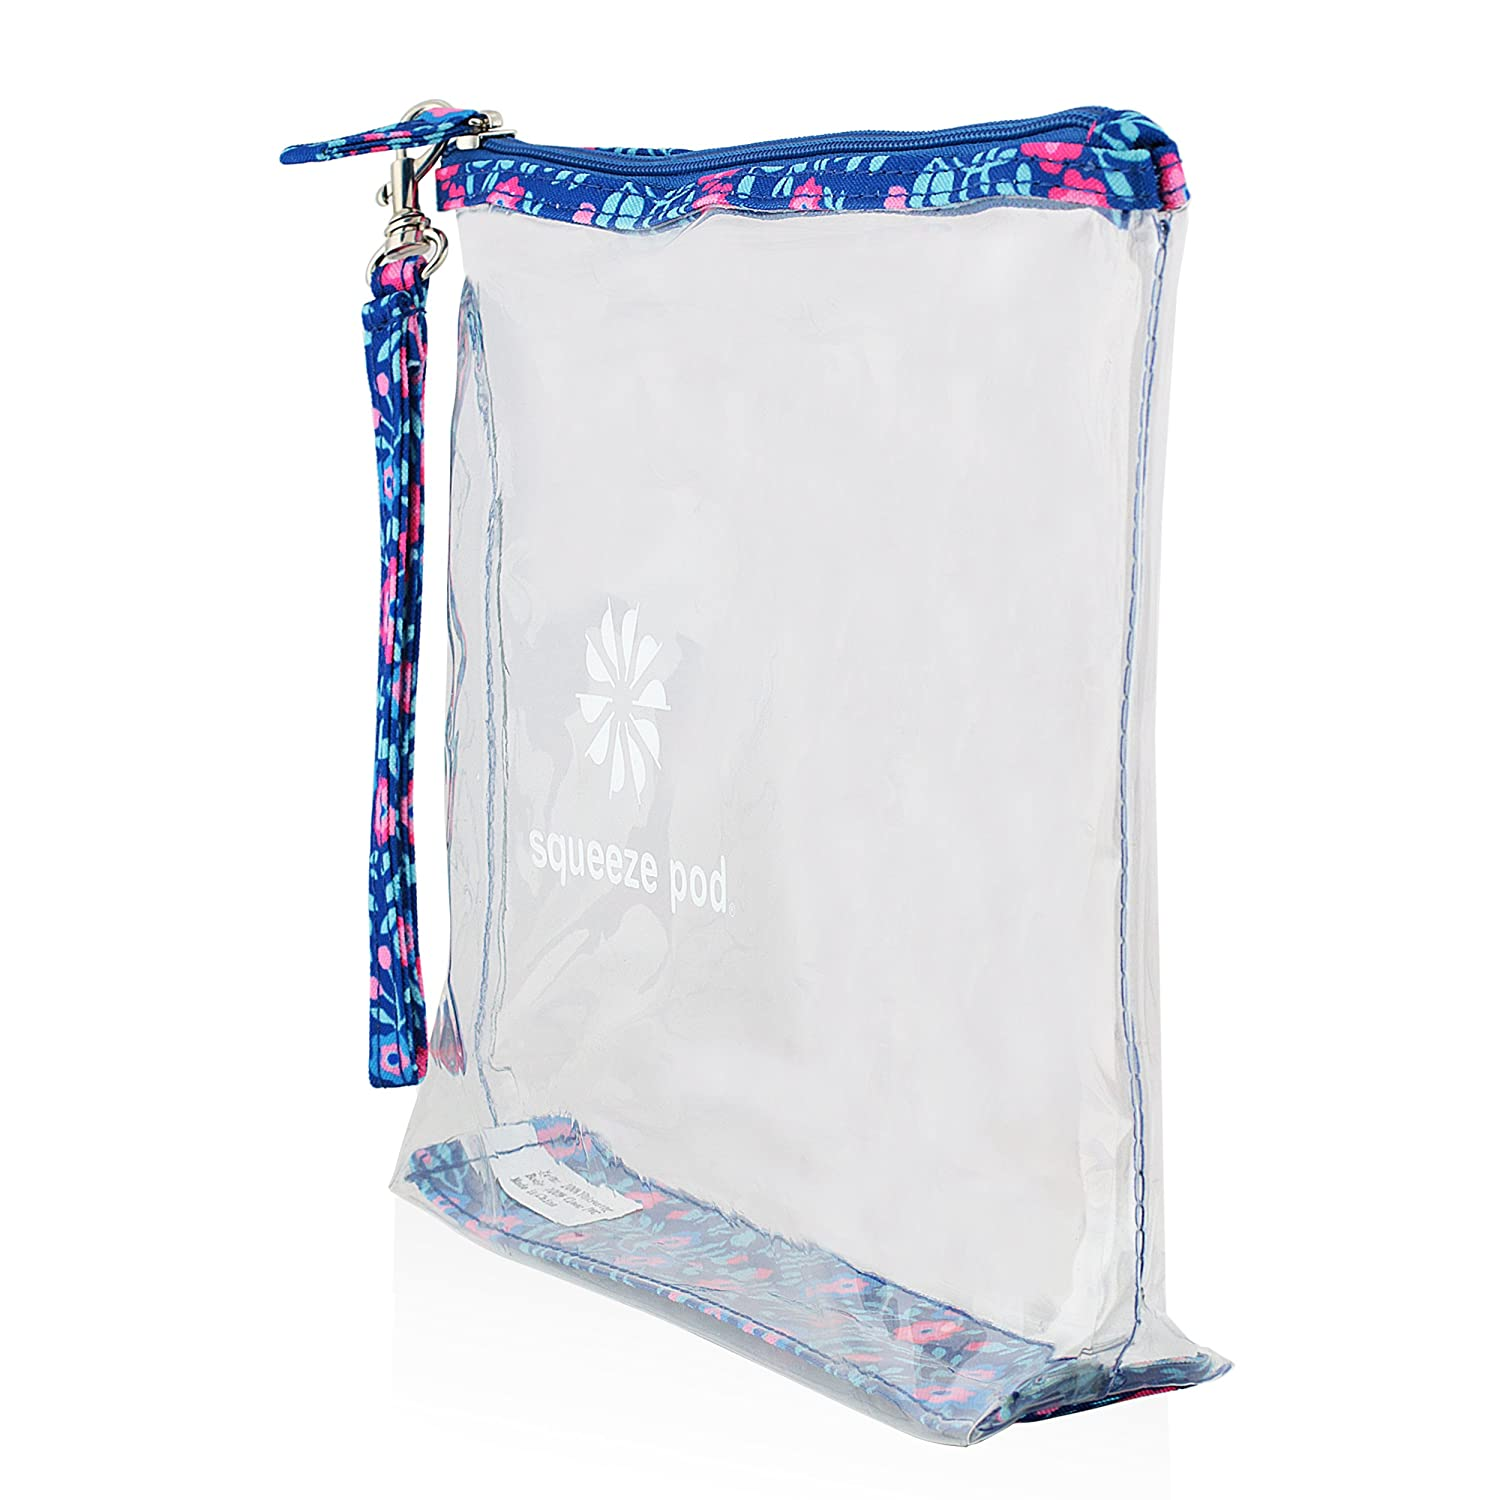 Zipper /& Carry Strap Clear Travel Bag with Heavy Duty Transparent Plastic Pouch Stands Up for Easy Loading Beach Water Resistant Great for Day Trips Pool or Sporting Events Flower Trim CTBMSF